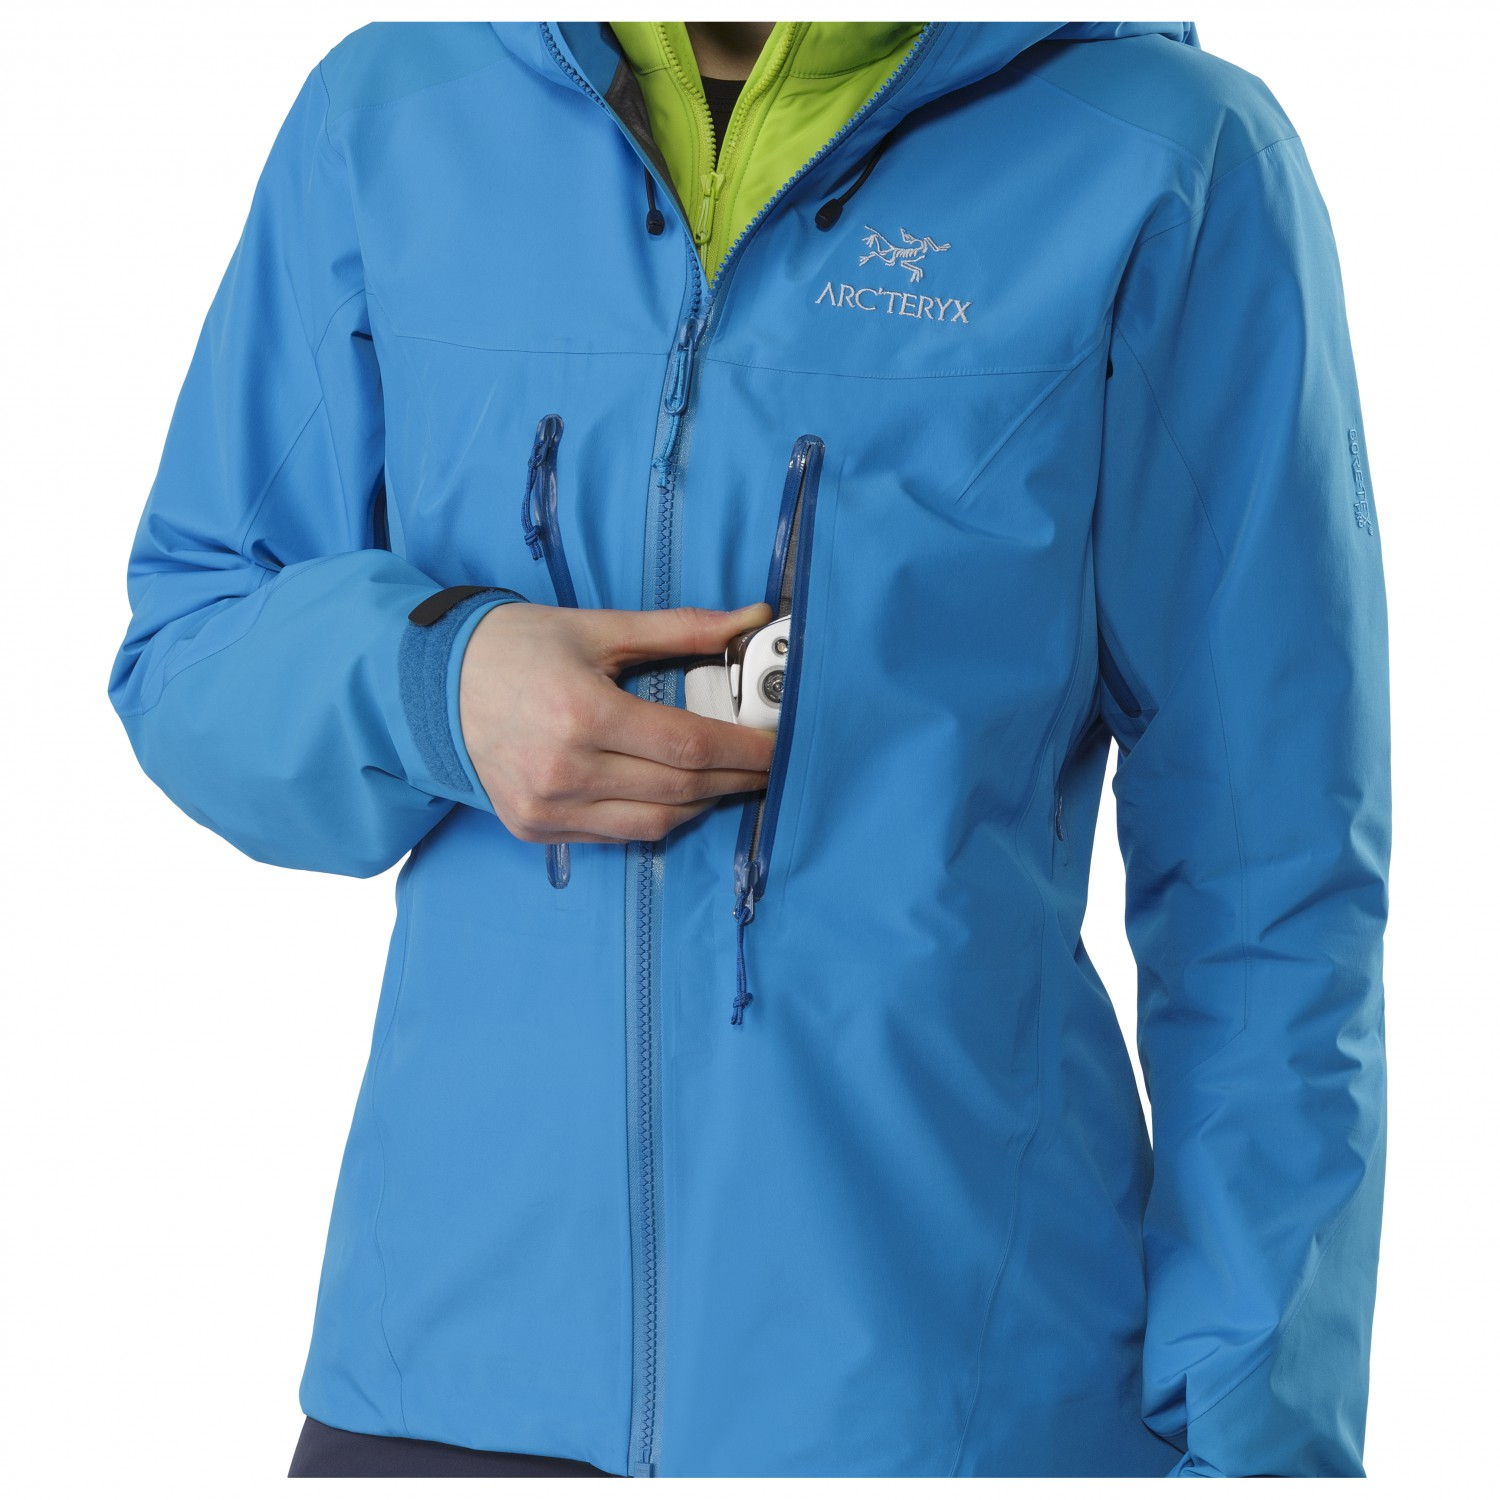 26a4cbaf Arc'teryx Alpha AR Jacket - Waterproof Jacket Women's | Free UK ...